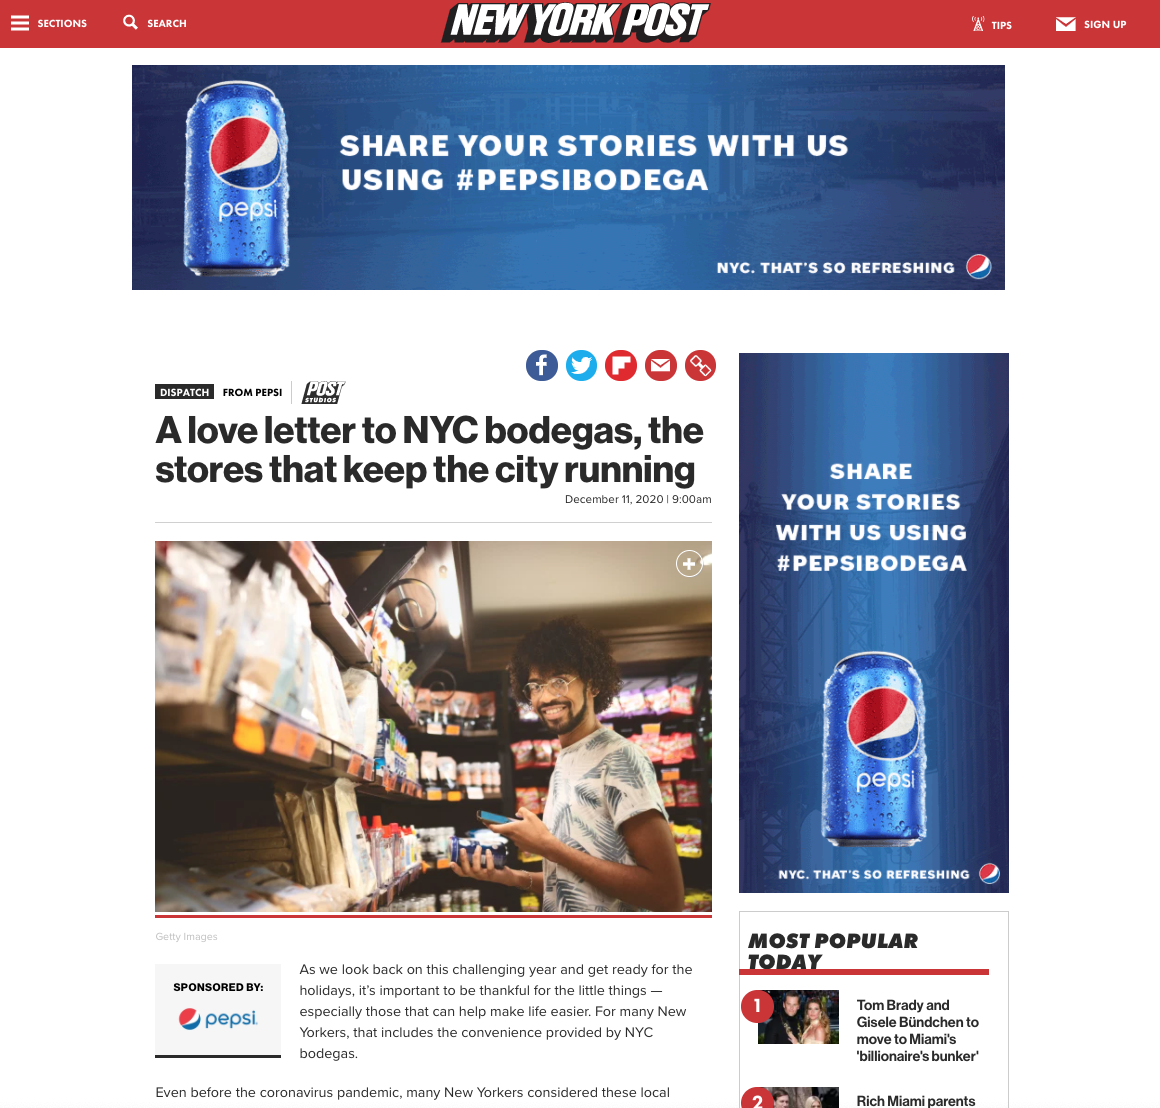 New York Post and Pepsi A Love Letter to NYC Bodegas